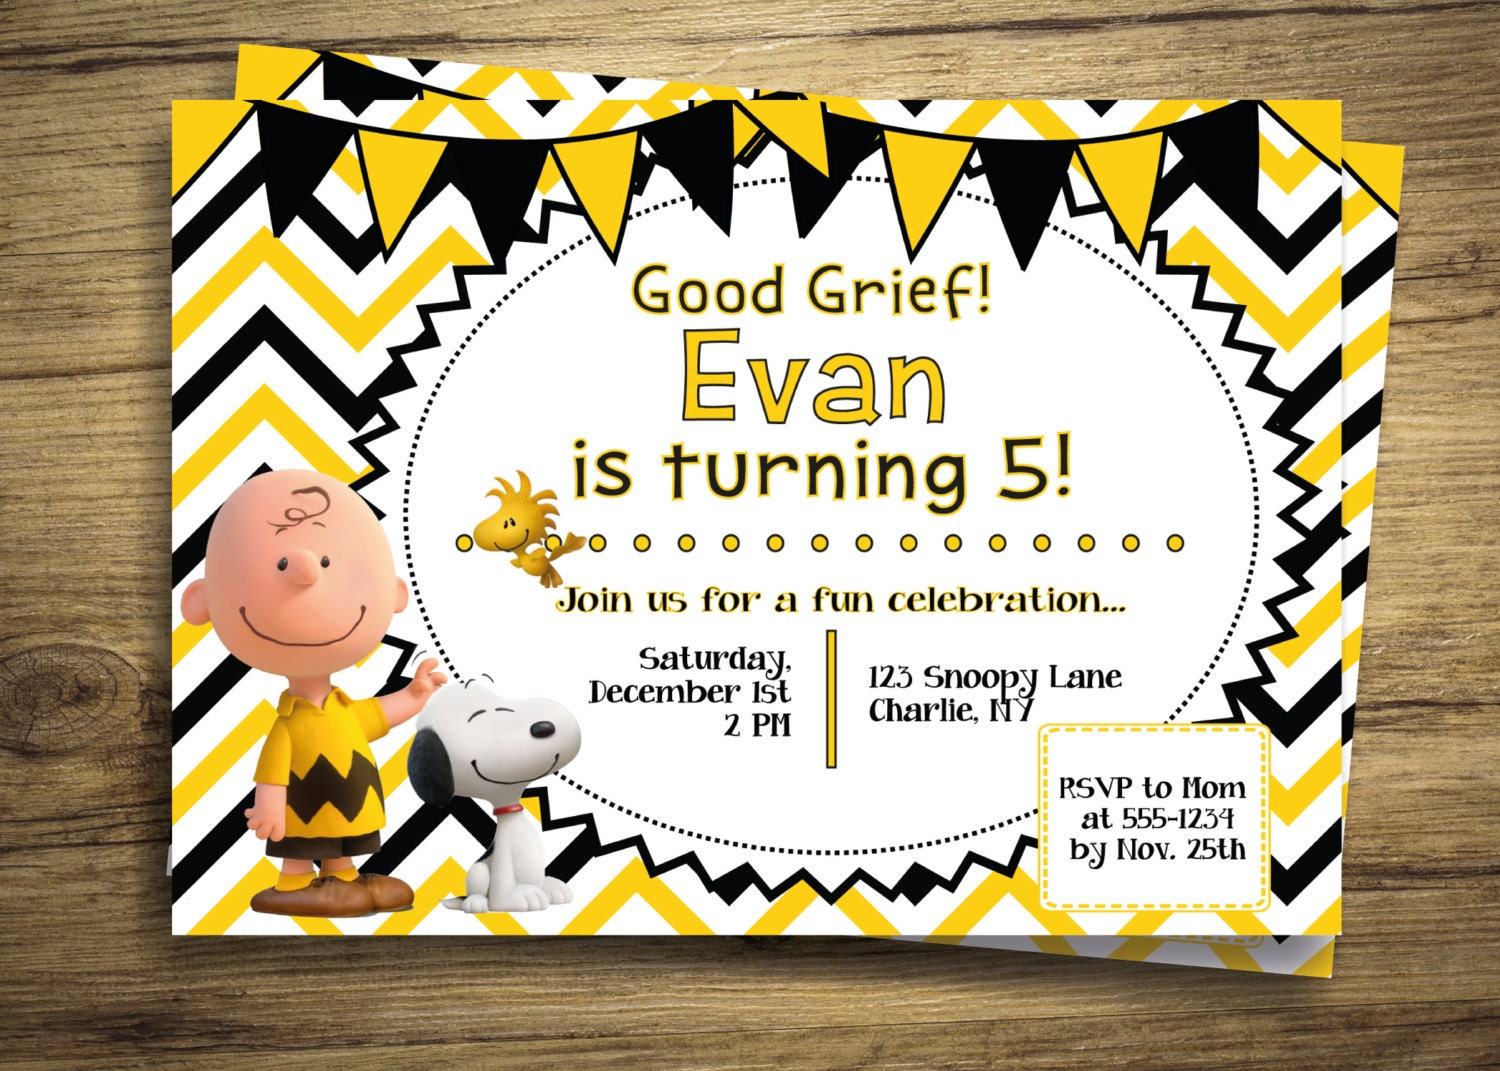 Snoopy Invitations was perfect invitations design